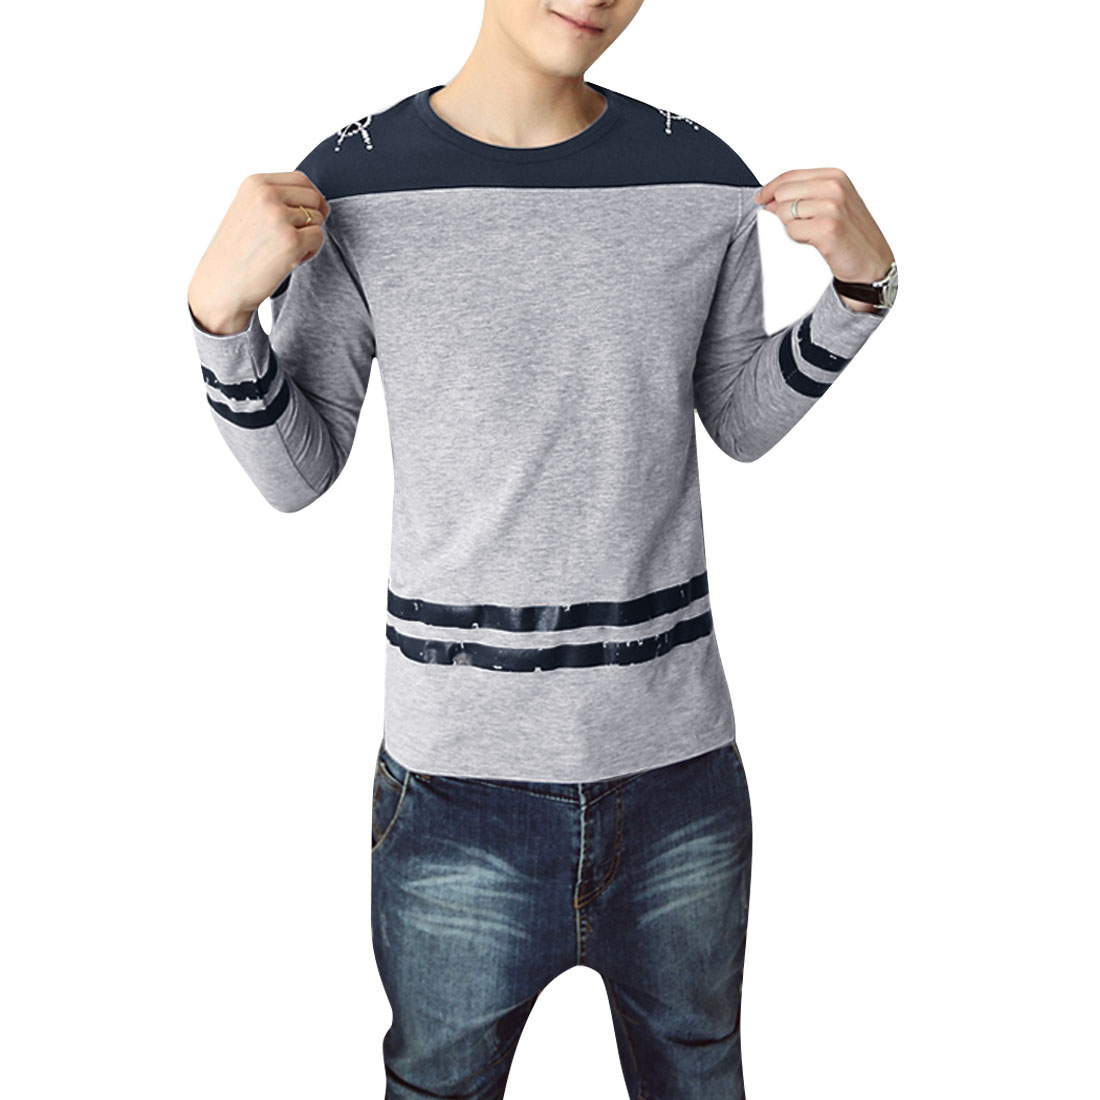 Pullover Gray Dark Blue Color Blocking Spring Casual T-Shirt for Man S